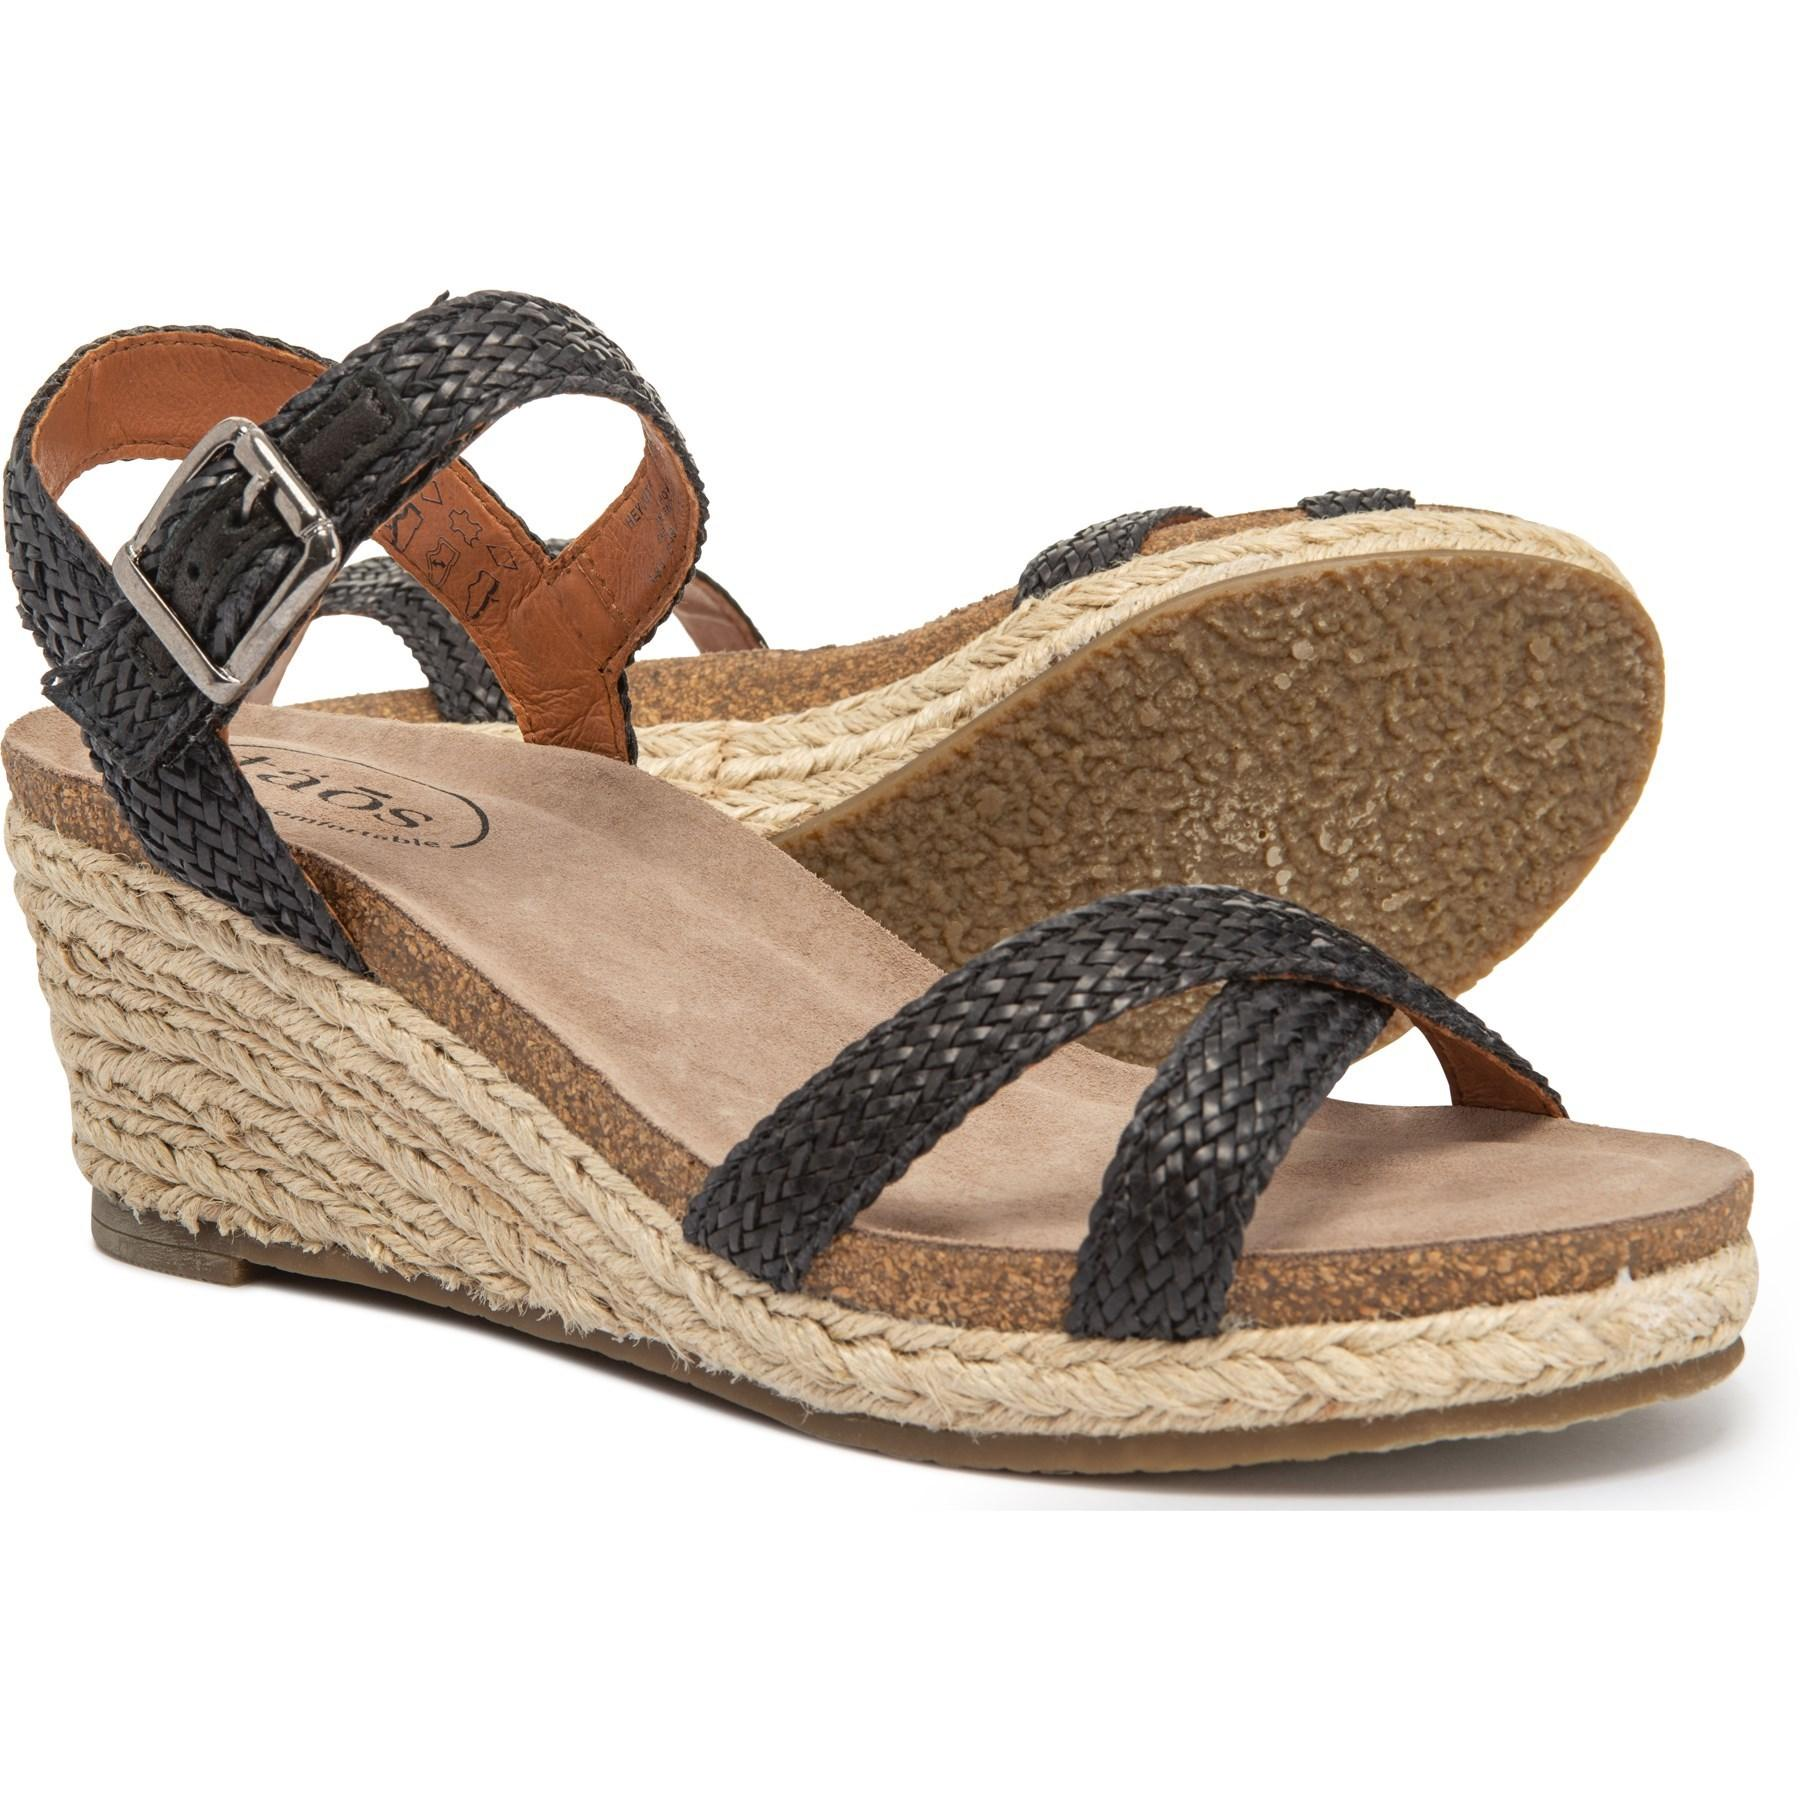 7f136d7b251 Lyst - Taos Footwear Made In Portugal Hey Jute Wedge Sandals (for ...